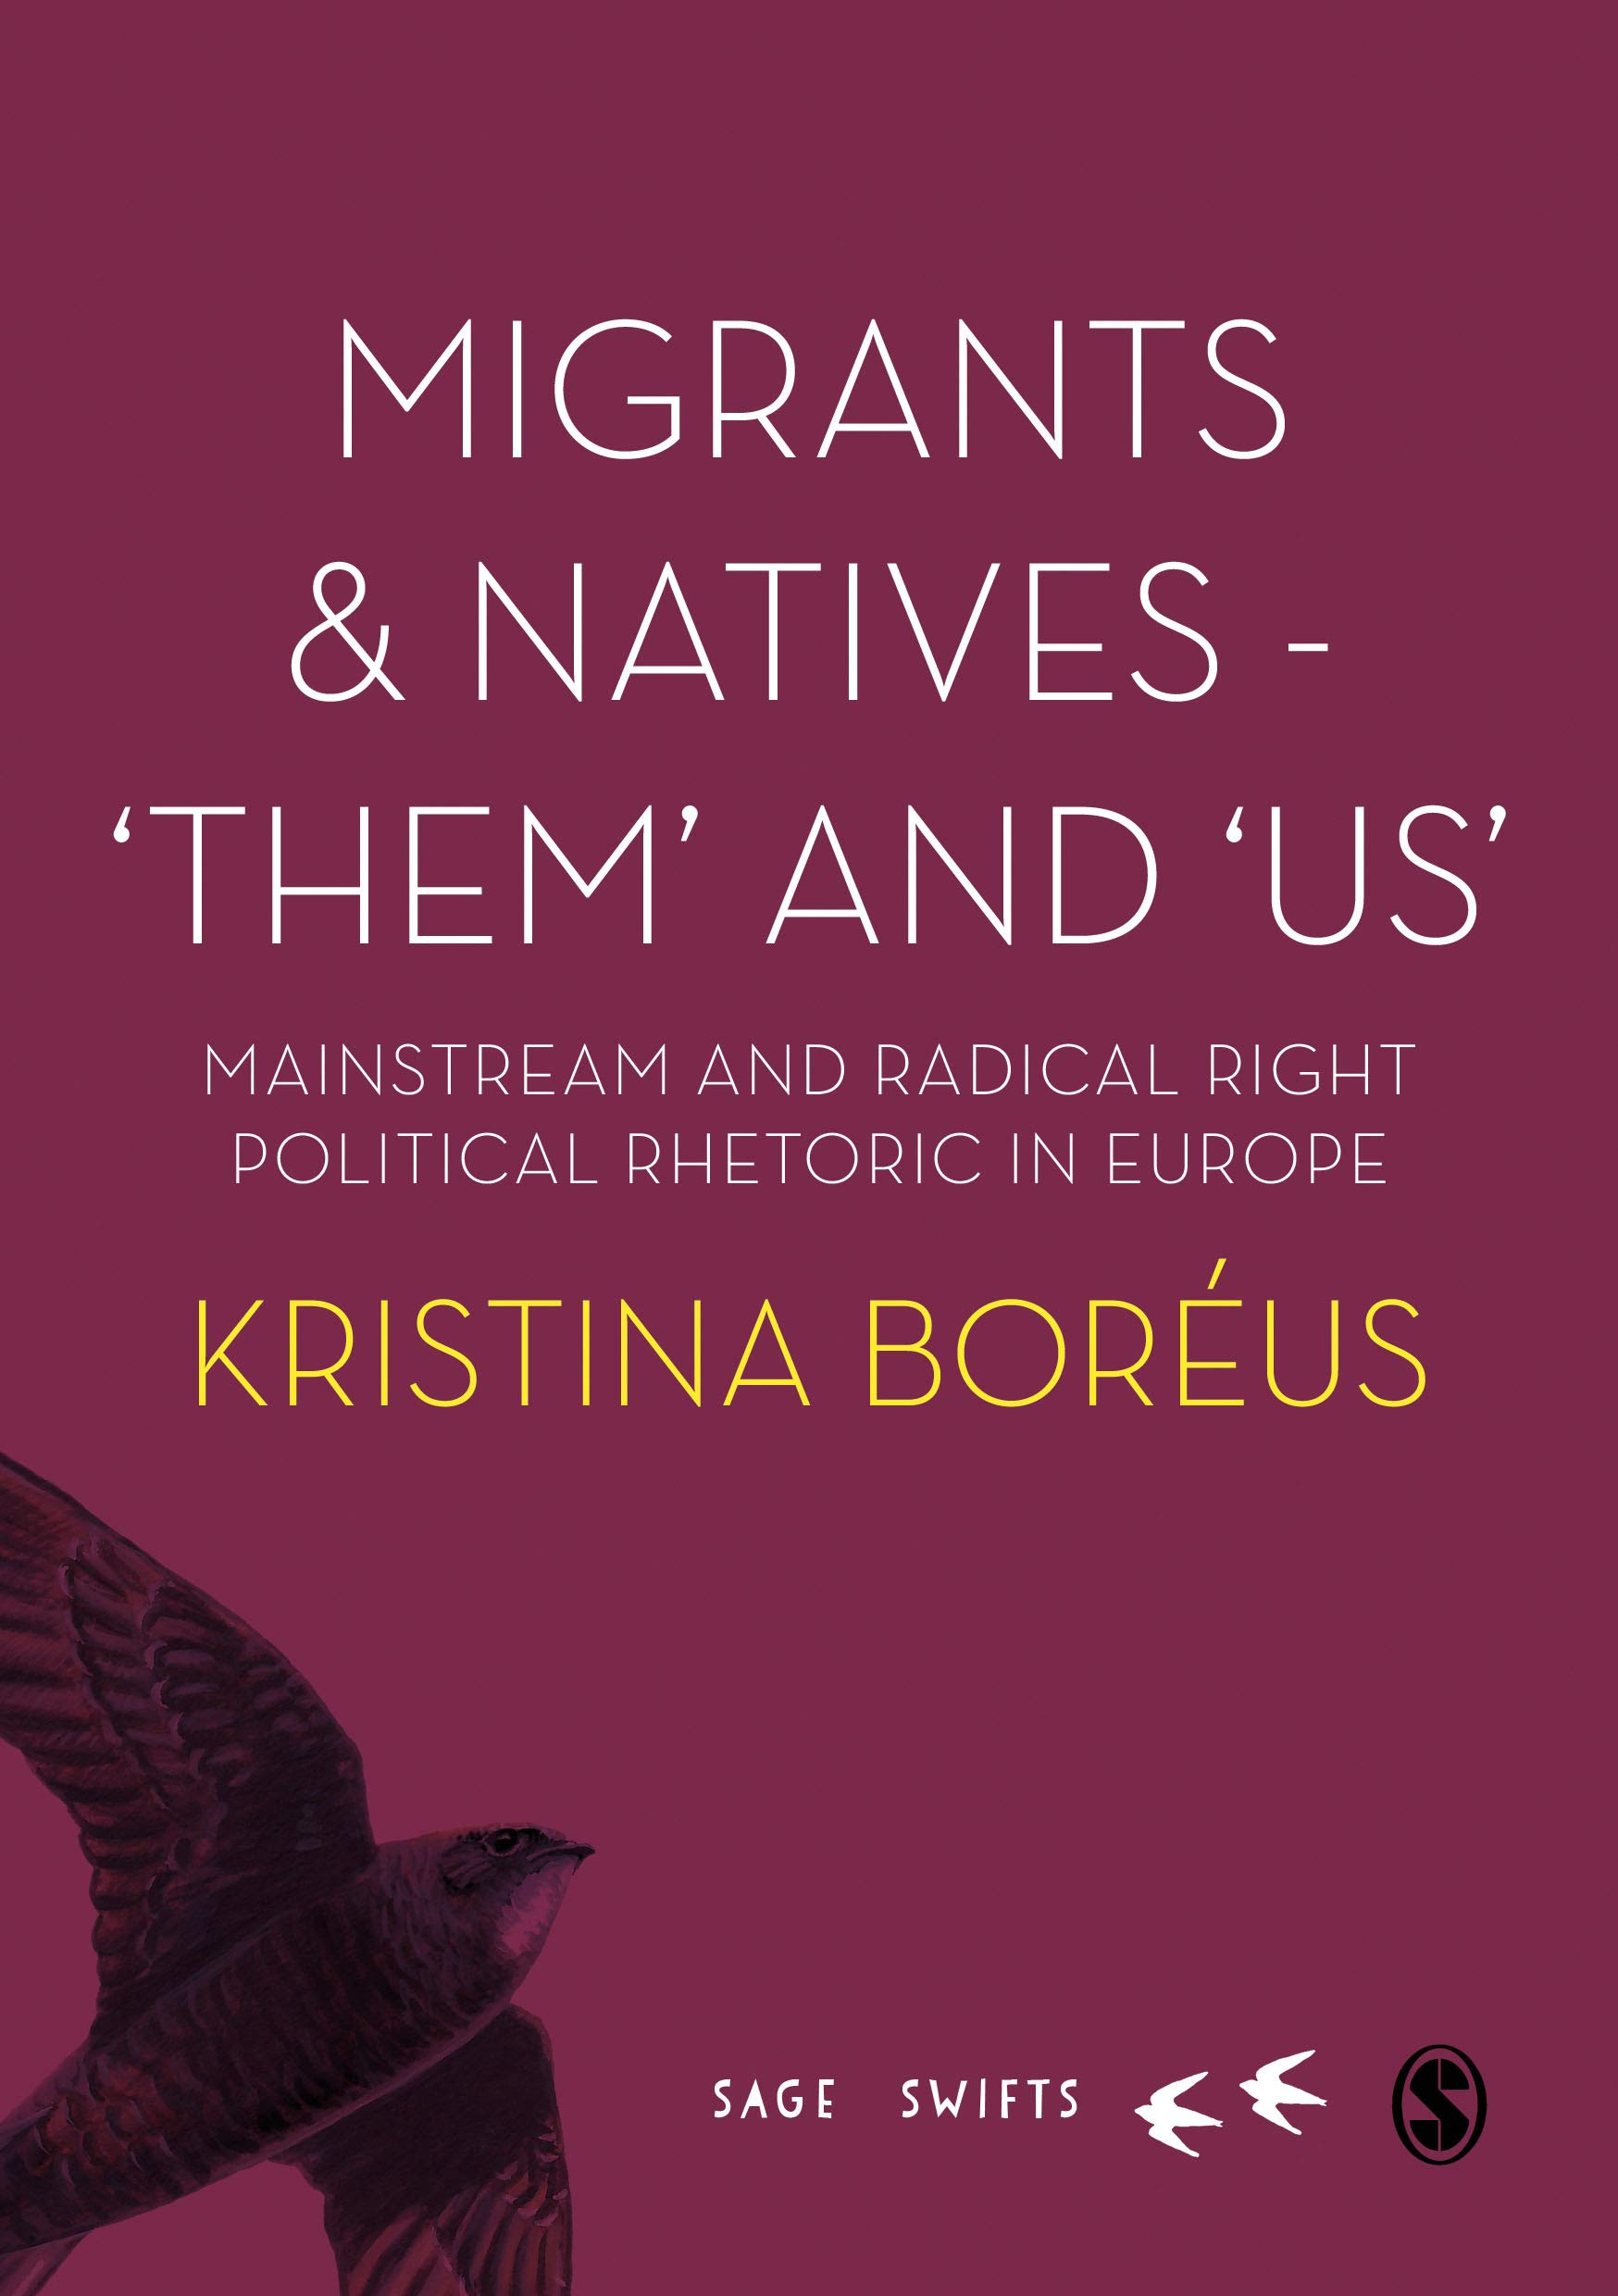 Book release: Migrants and Natives - 'Them' and 'Us' Mainstream and Radical Right Political Rhetoric in Europe